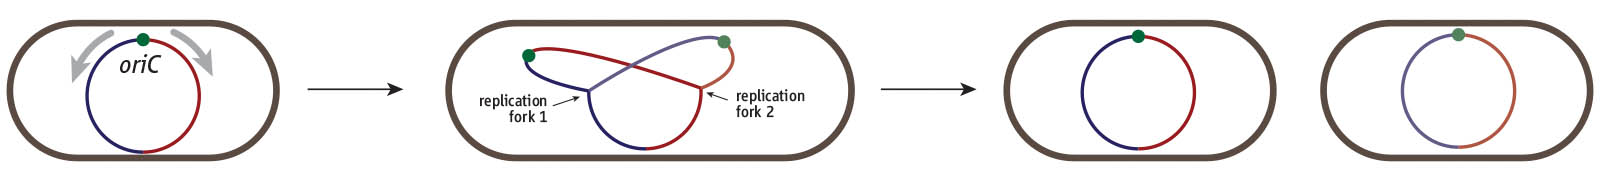 Cell division cycle of a bacterium such as *E. coli*. Cells harbour a single circular chromosome which contains a single replication origin called *oriC*. Two replication forks are recruited and duplicate the chromosome in opposite directions, thereby dividing the chromosome into a clockwise (red) and counterclockwise (blue) half or replichore. Once replication is complete the two chromosomes can be segregated into the two daughter cells.